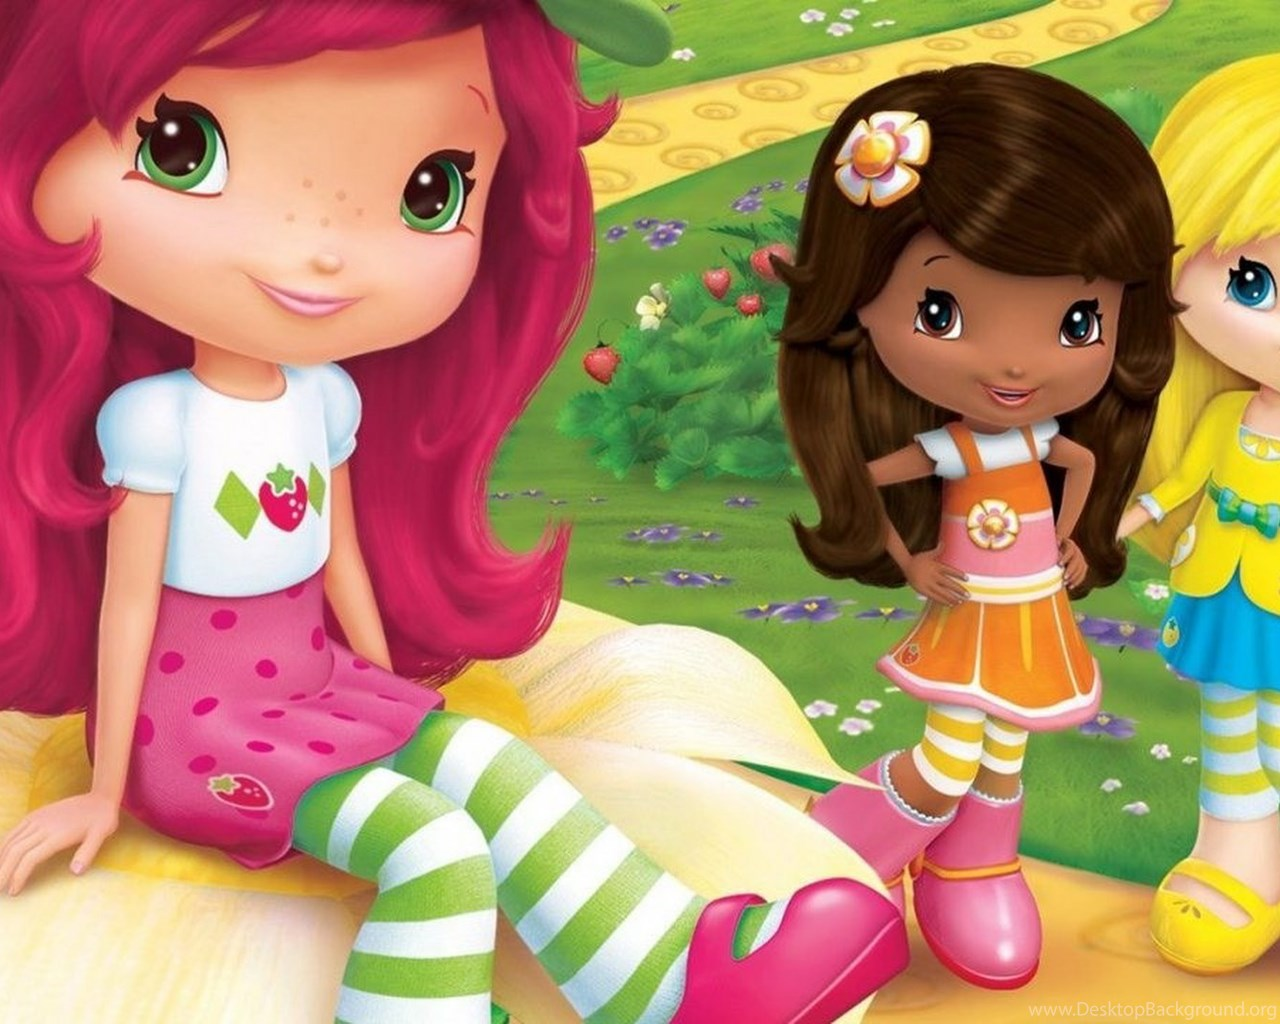 strawberry shortcake wallpapers desktop background